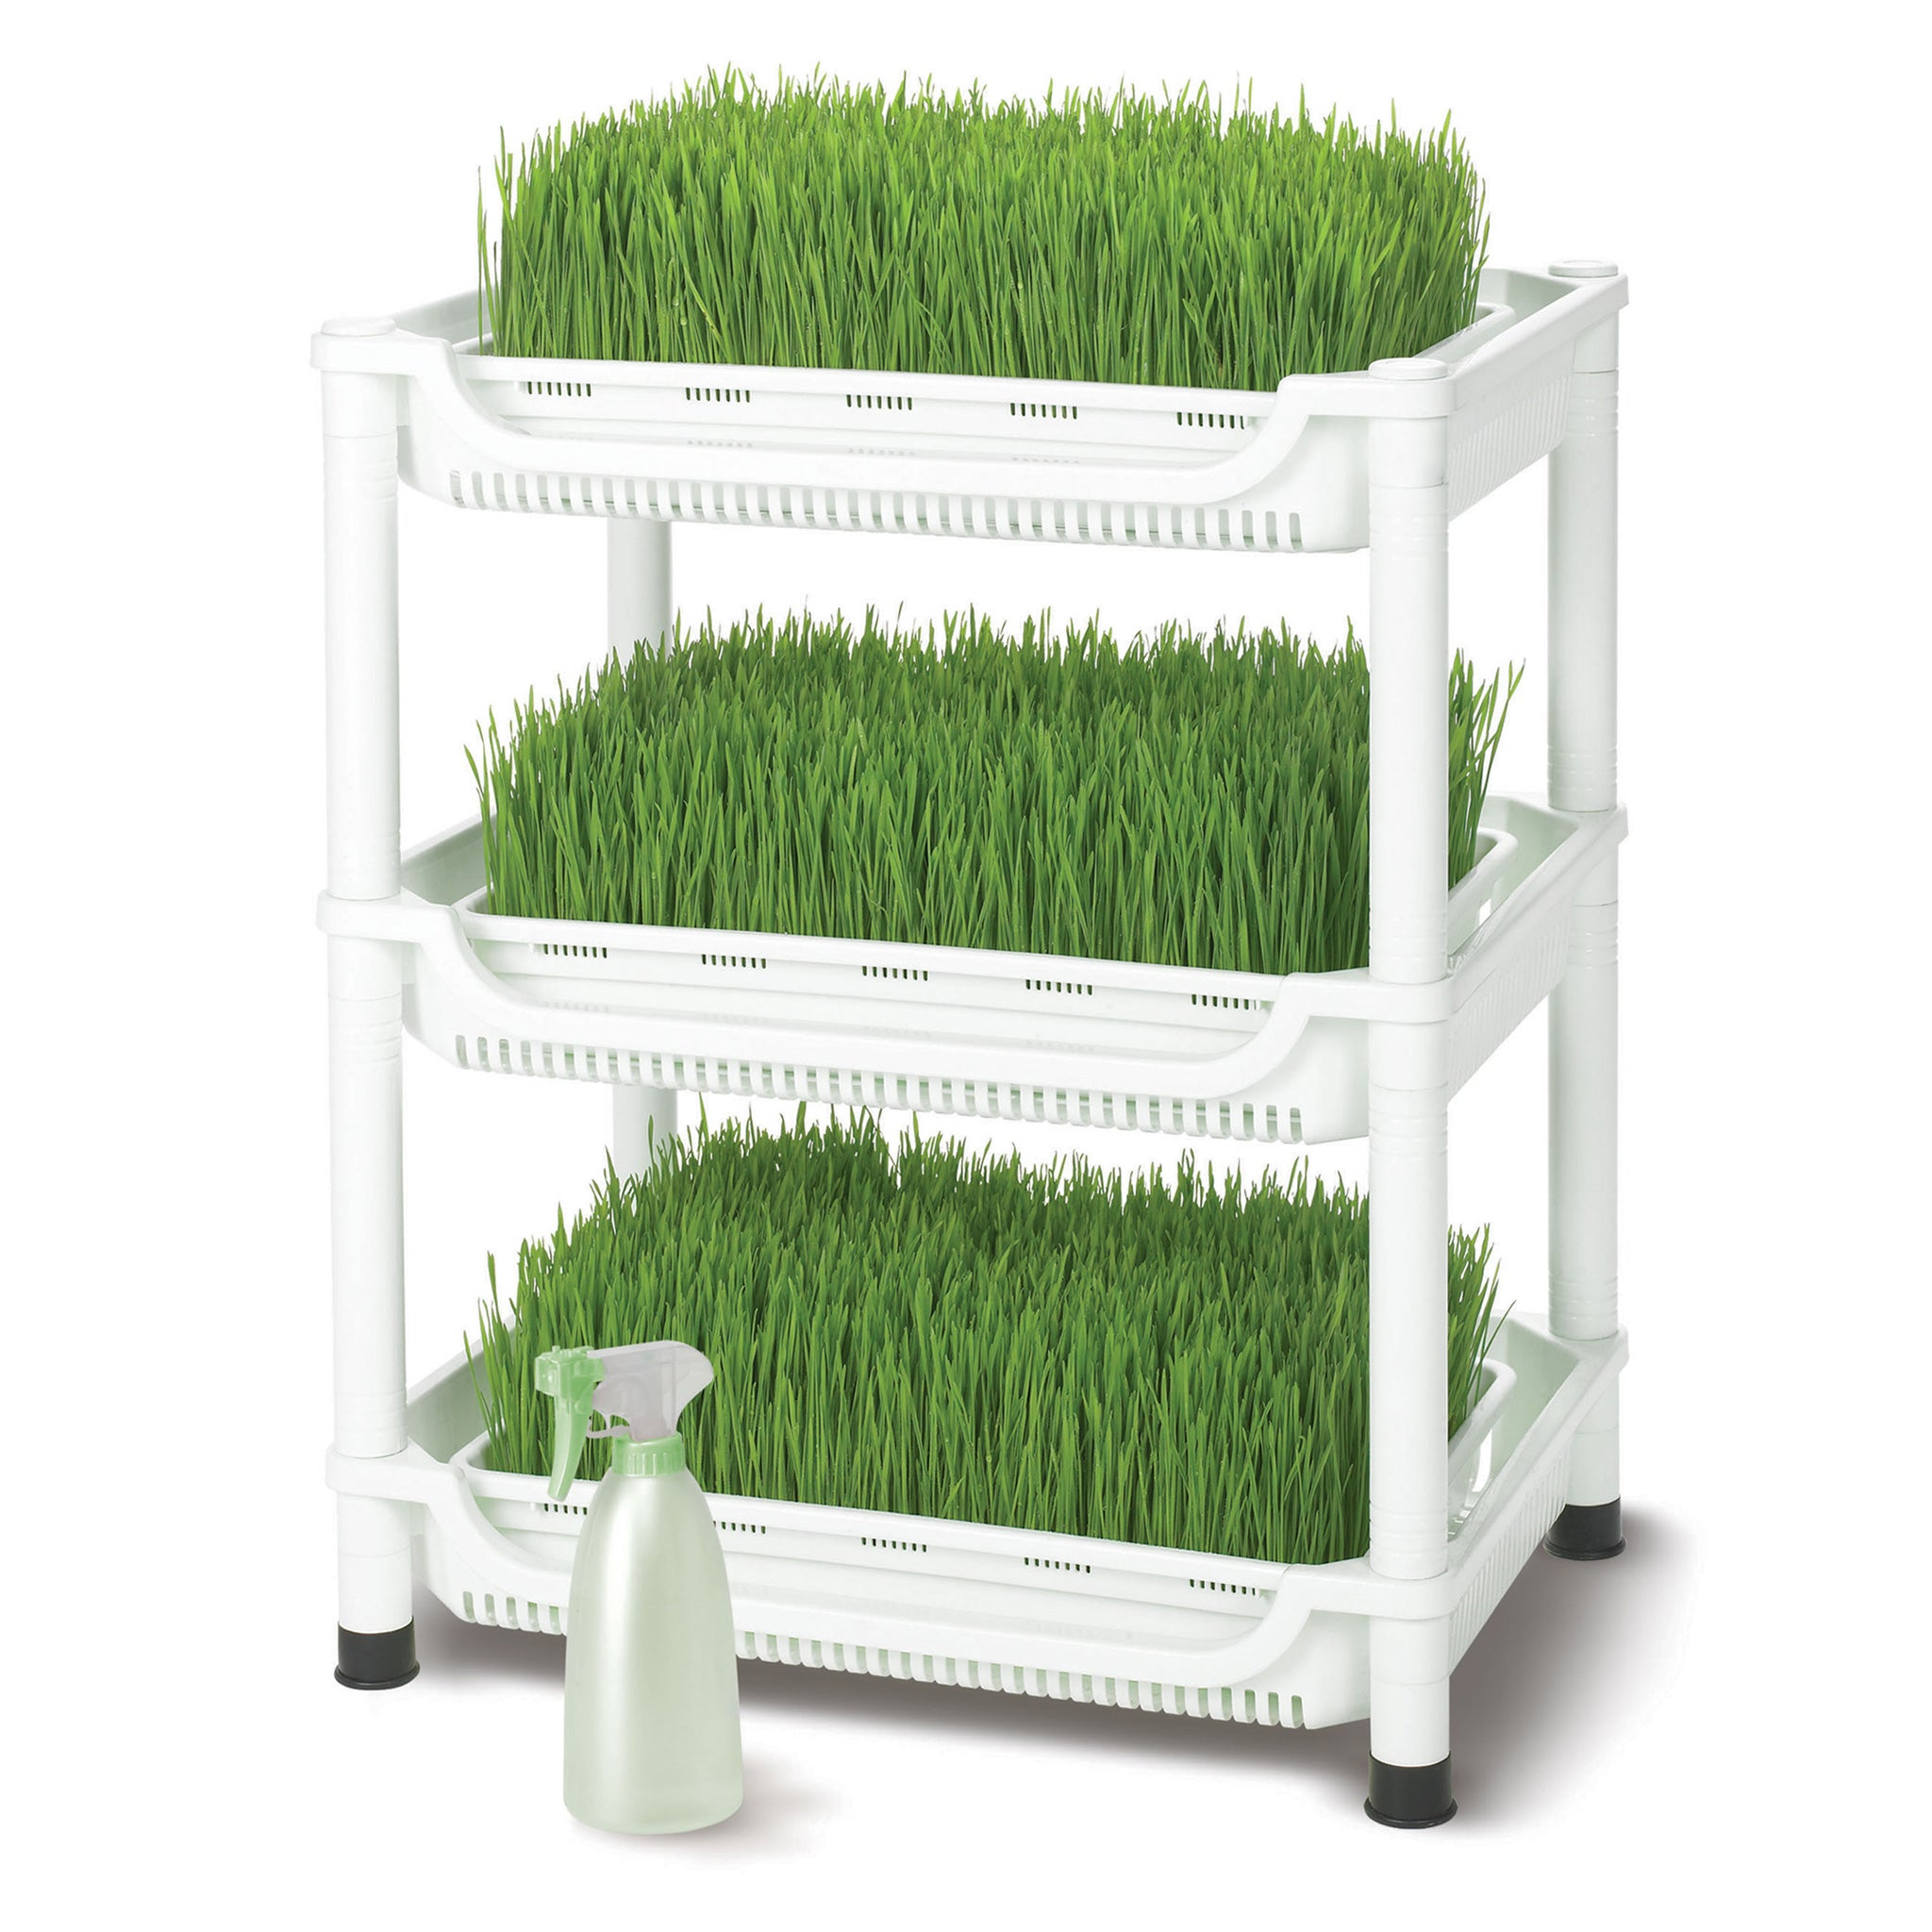 Sproutman's® Soil-Free Wheatgrass Grower SM-350 - Tribest